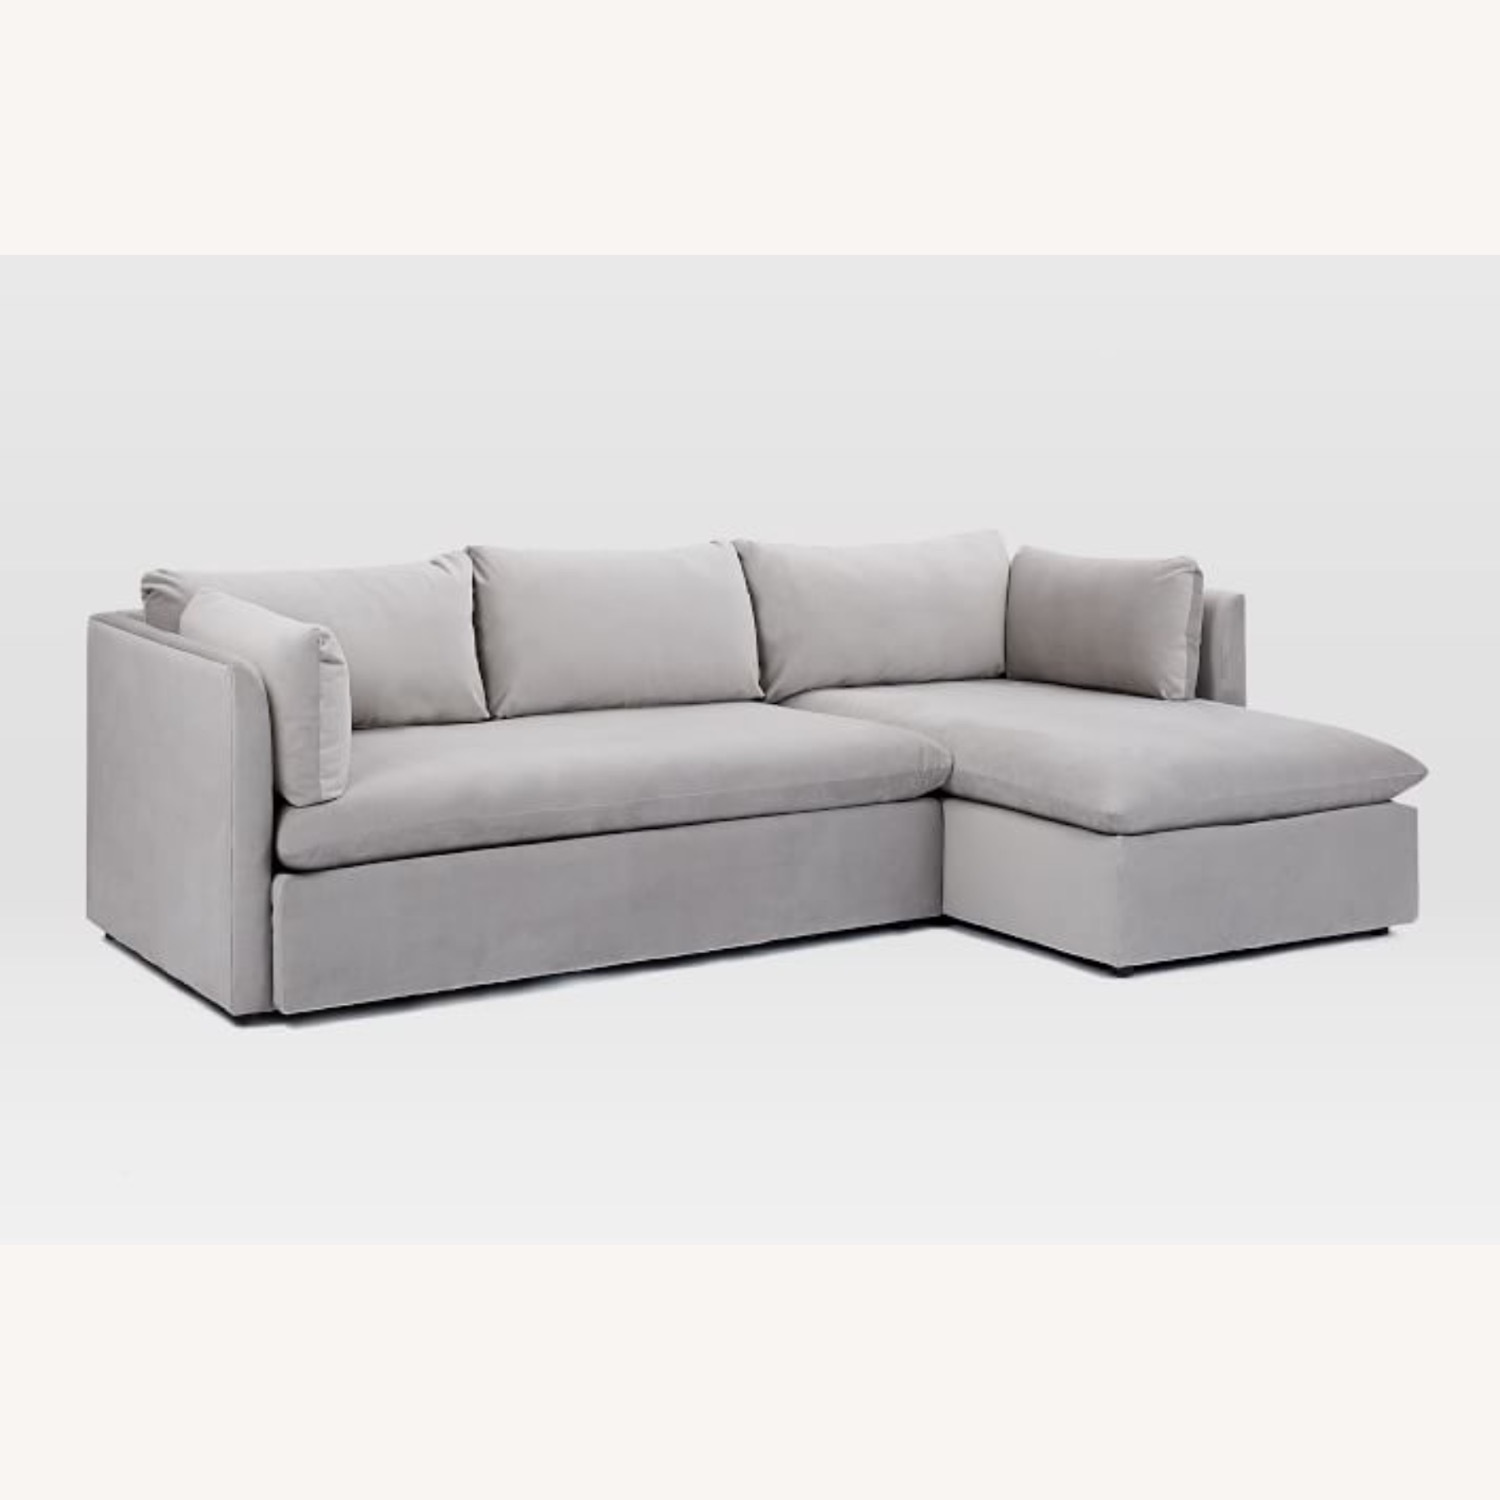 West Elm Shelter Sectional Sofa Dove Gray - image-8